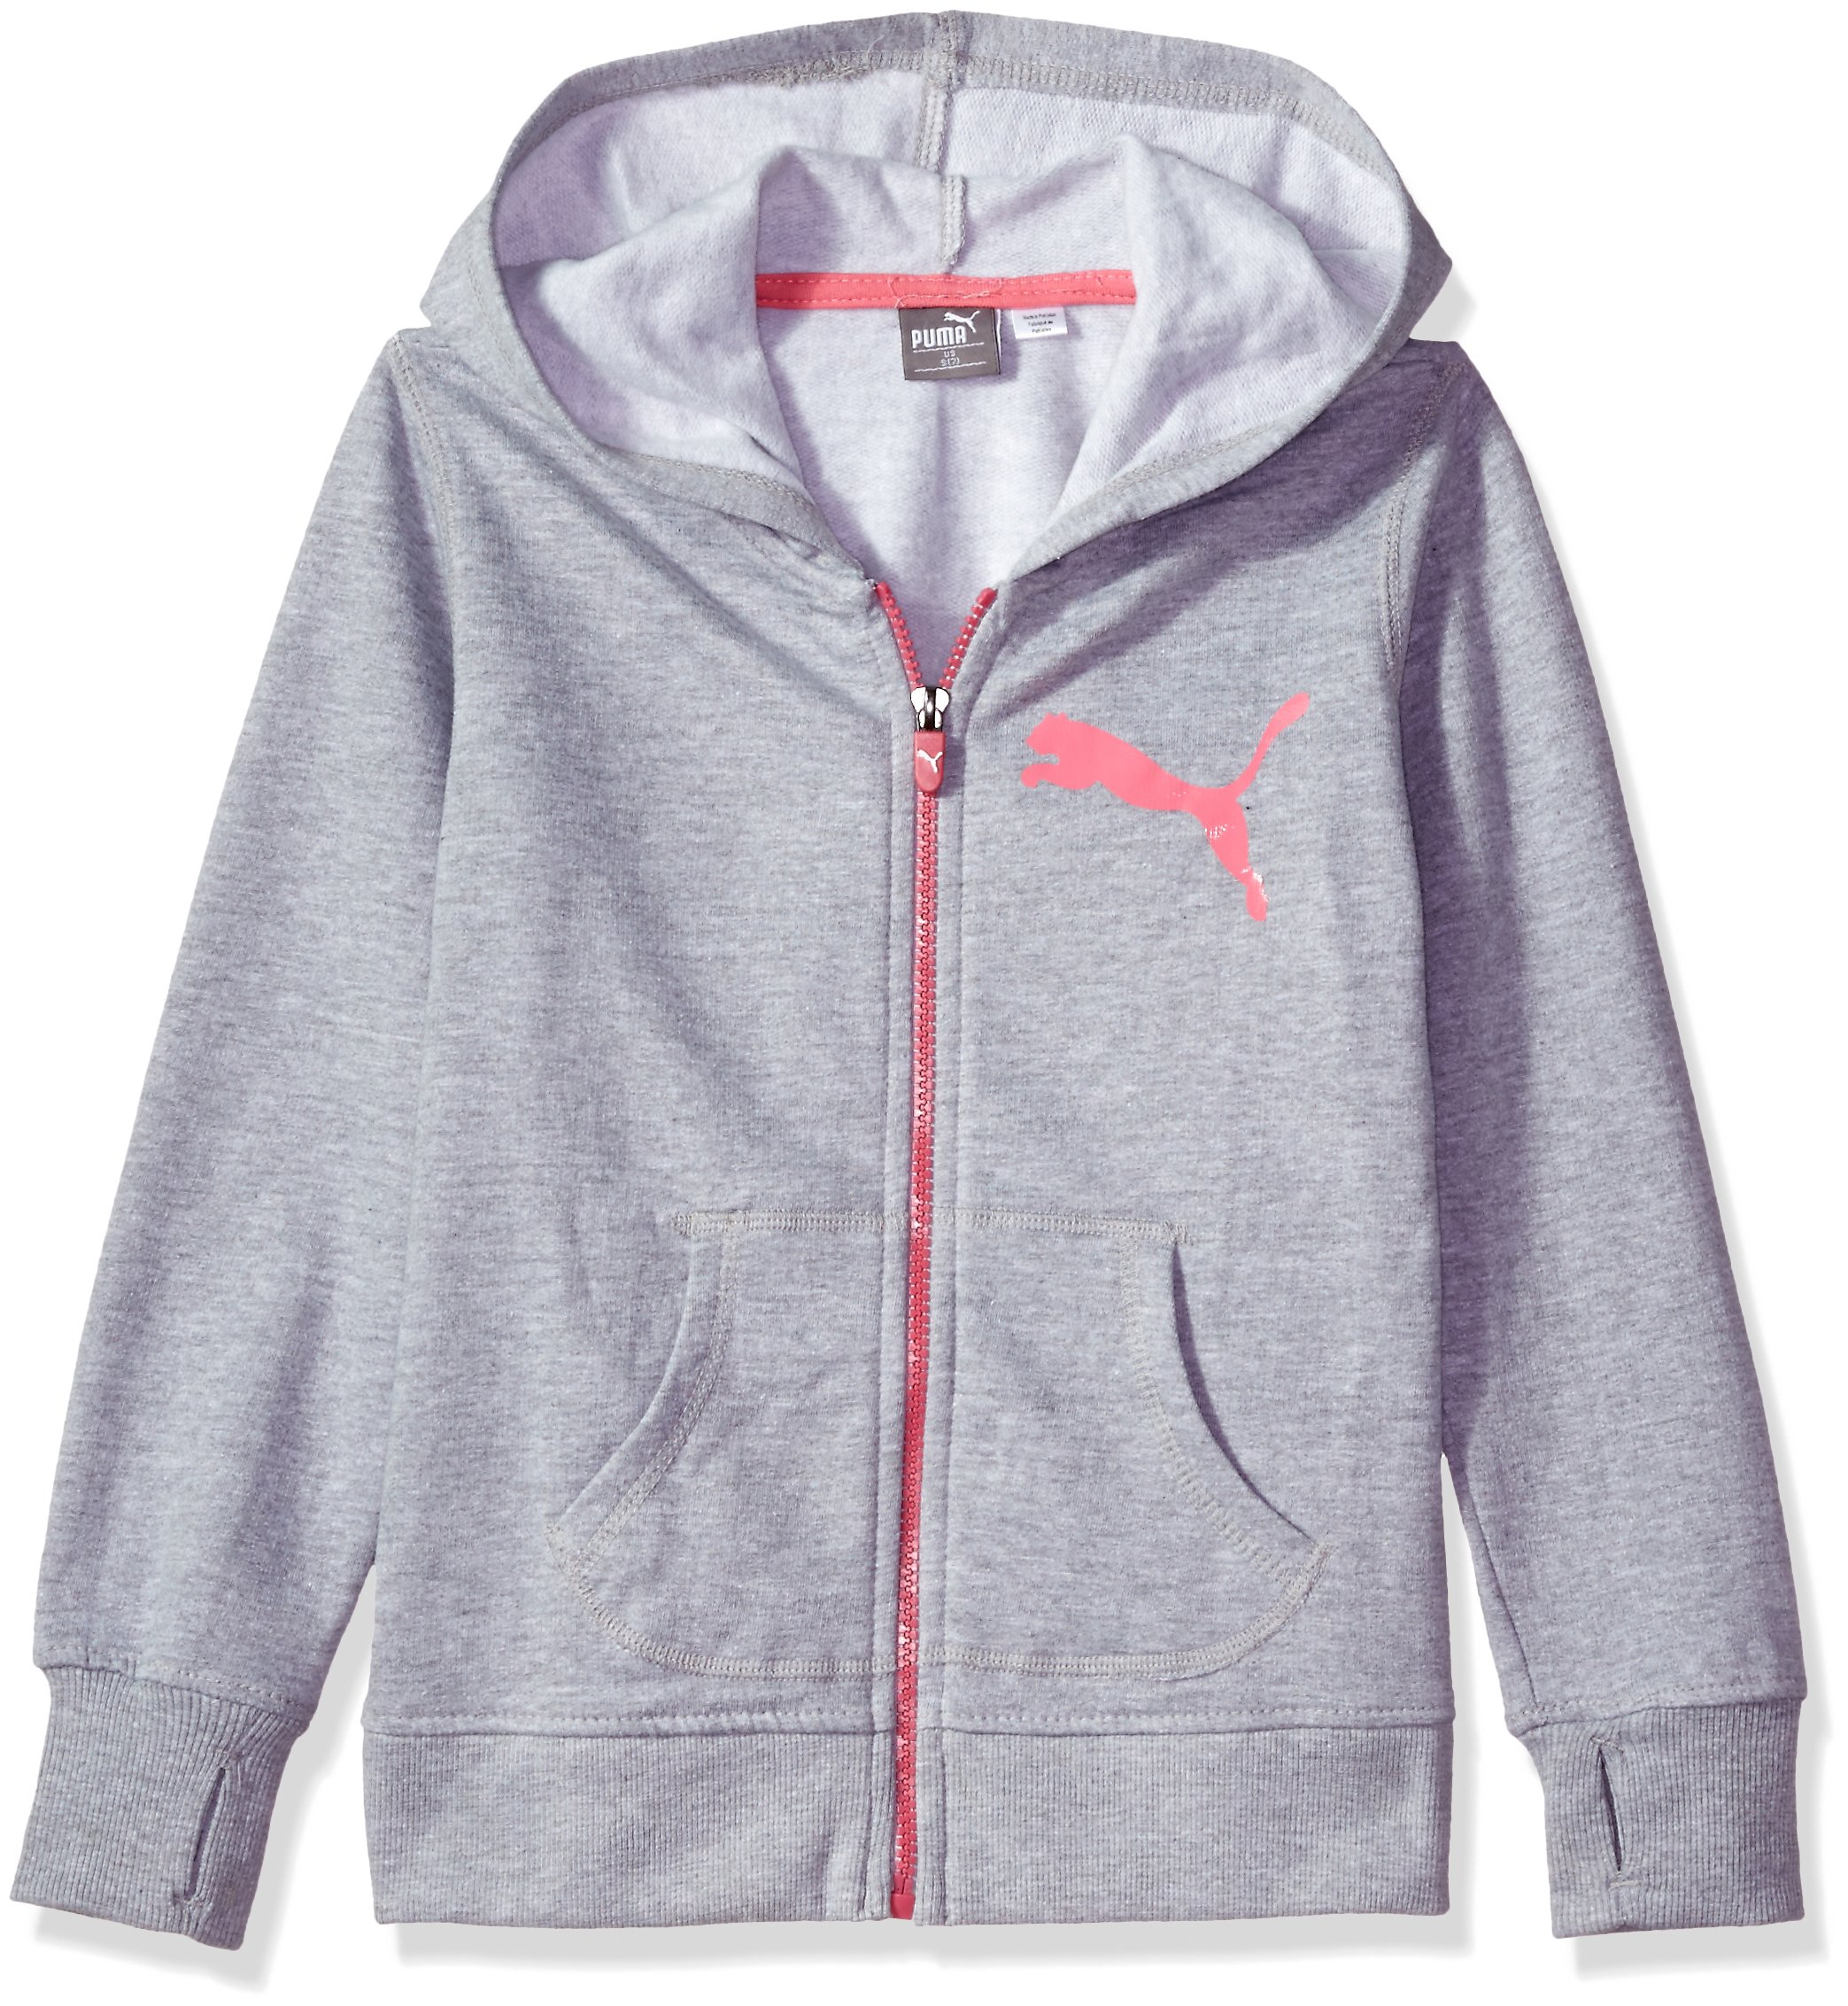 PUMA Big Girls' Hoodie, Light Heather Grey, X-Large (16)